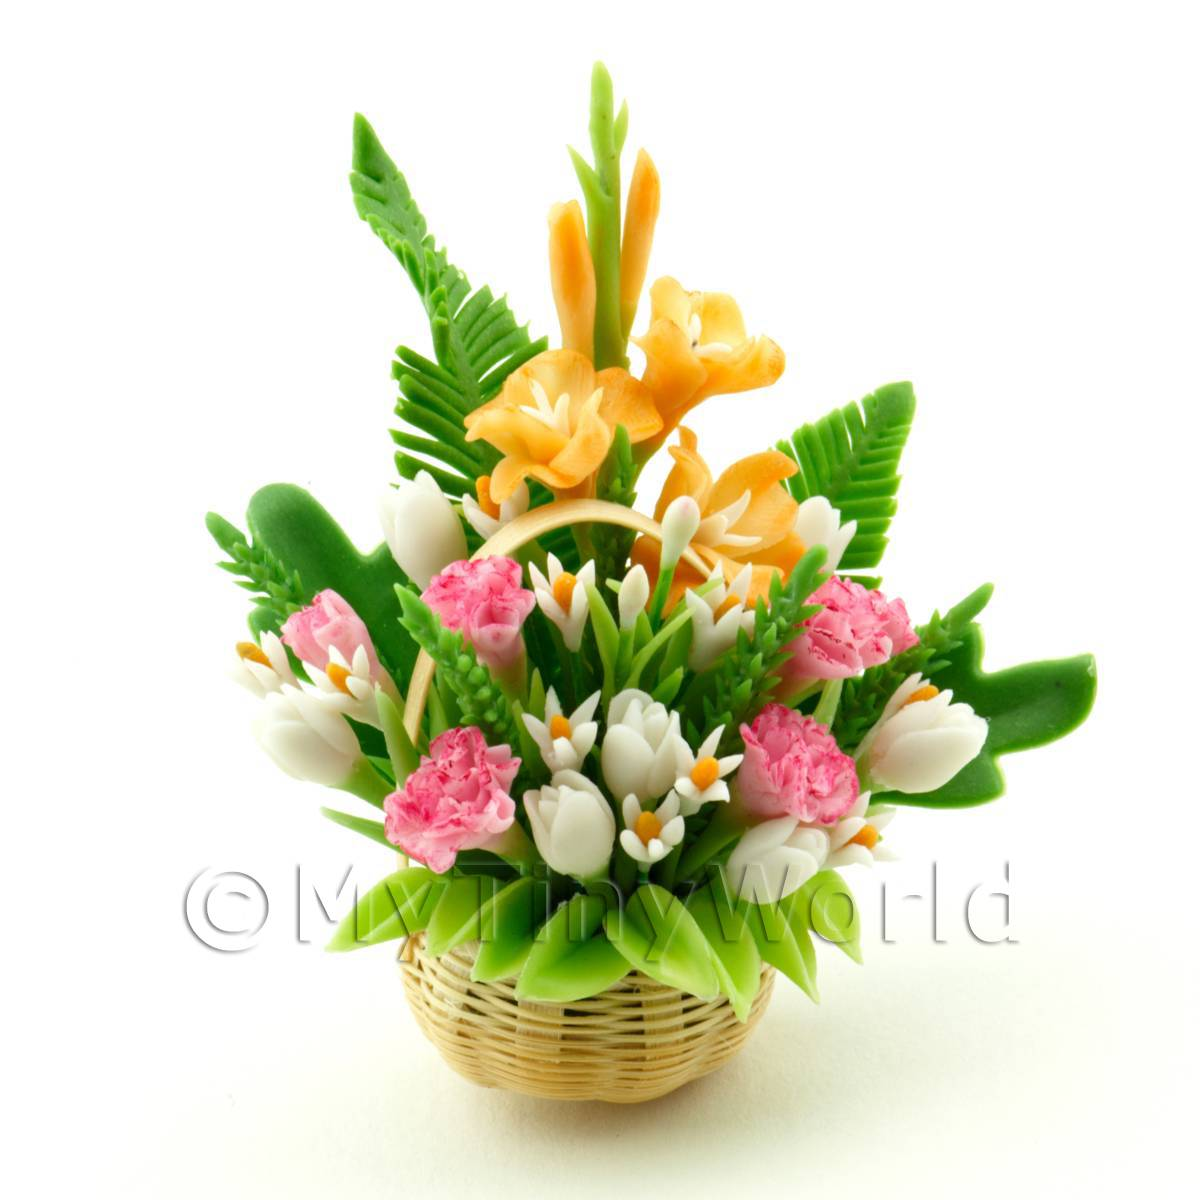 Dolls House Miniature Mixed Flower Arrangement